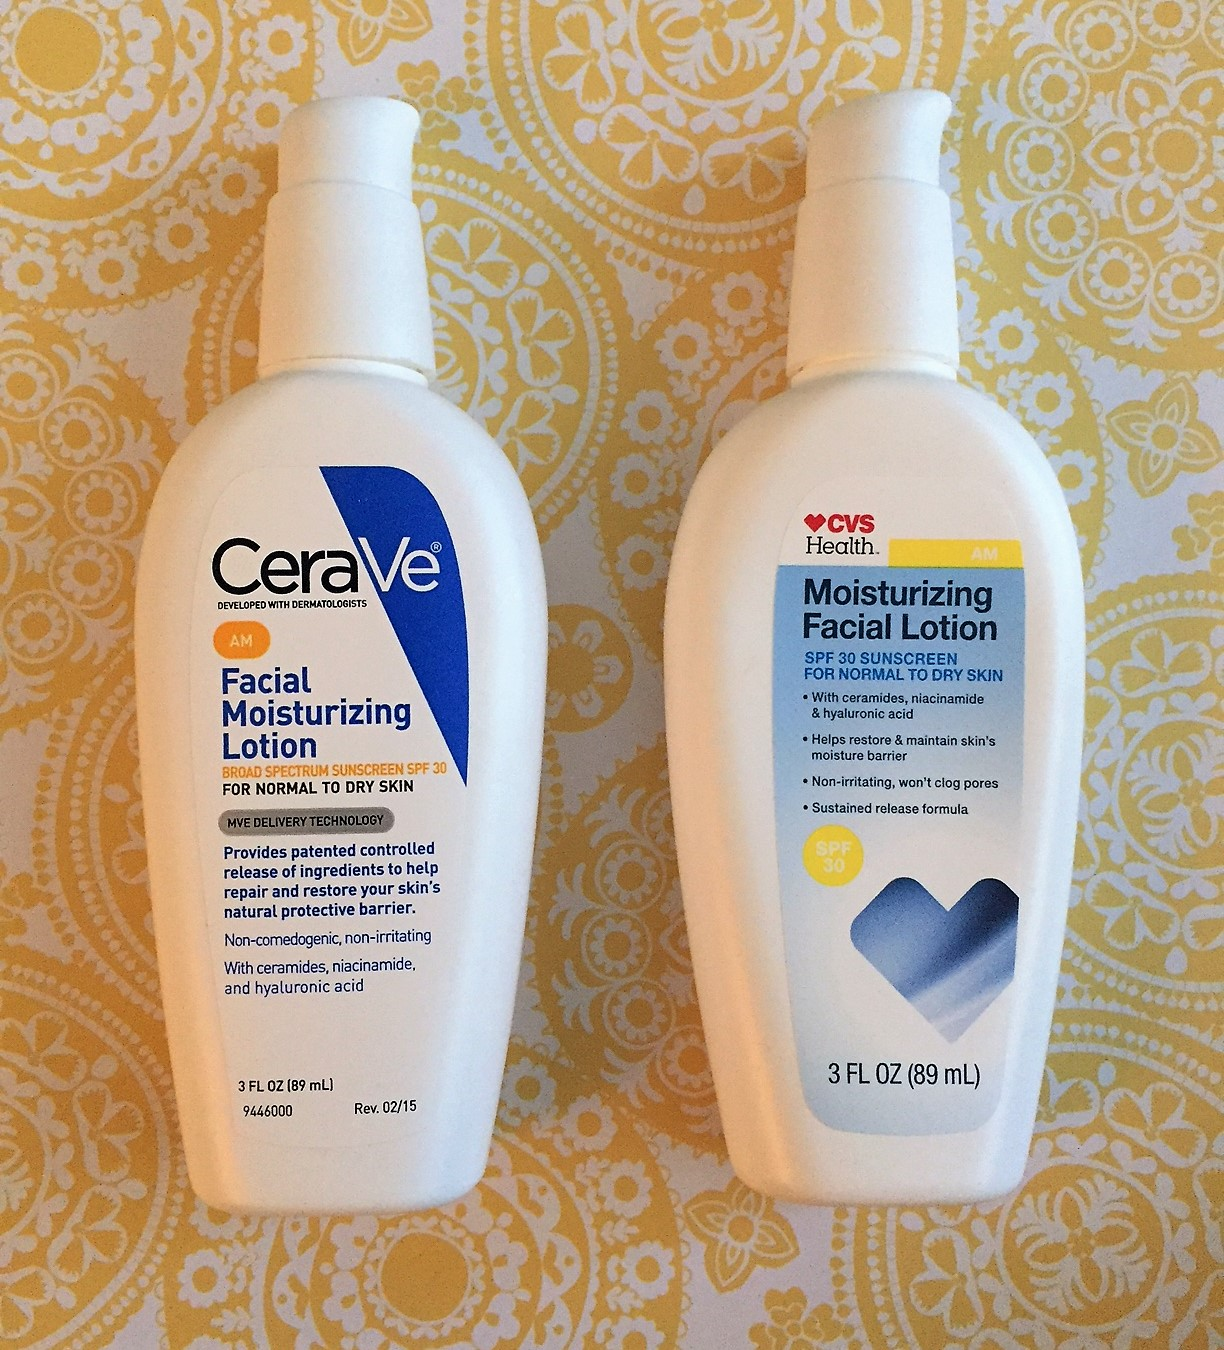 We recommend saving by switching to the CVS version as we can't tell the difference! The CVS version uses the same percentages of active ingredients that are in a prior version of CeraVe.